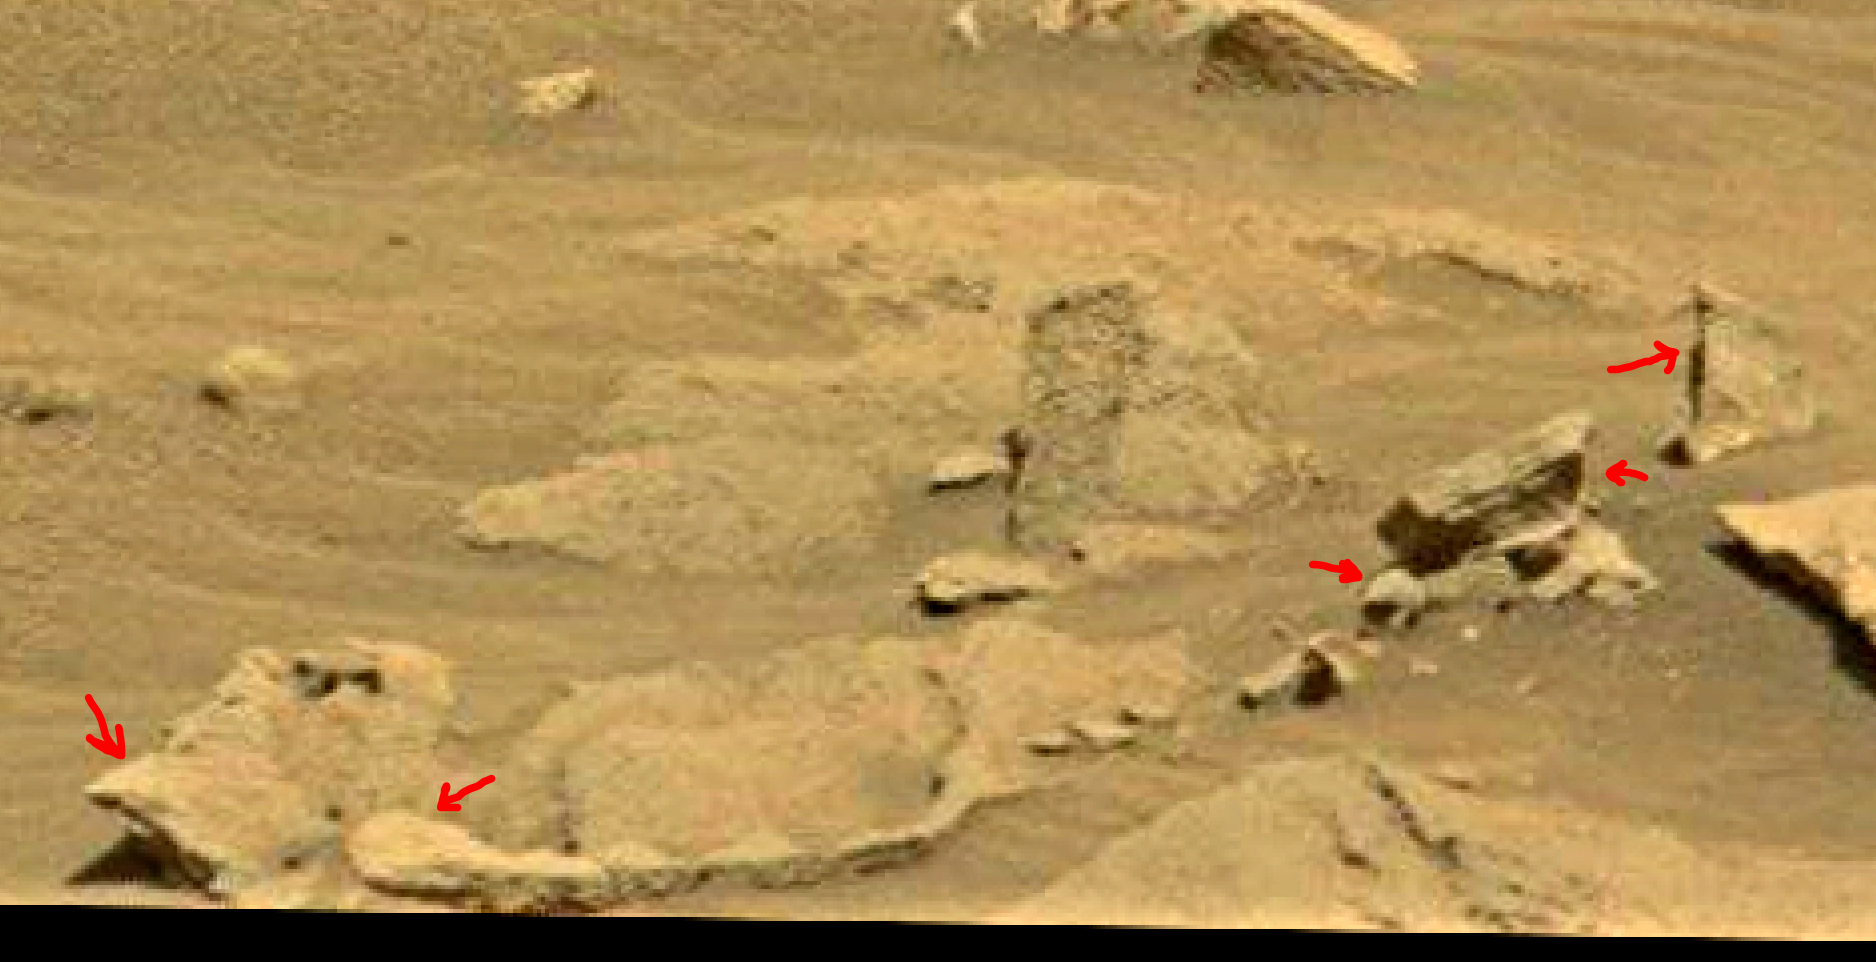 mars sol 1353 anomaly-artifacts 42a was life on mars